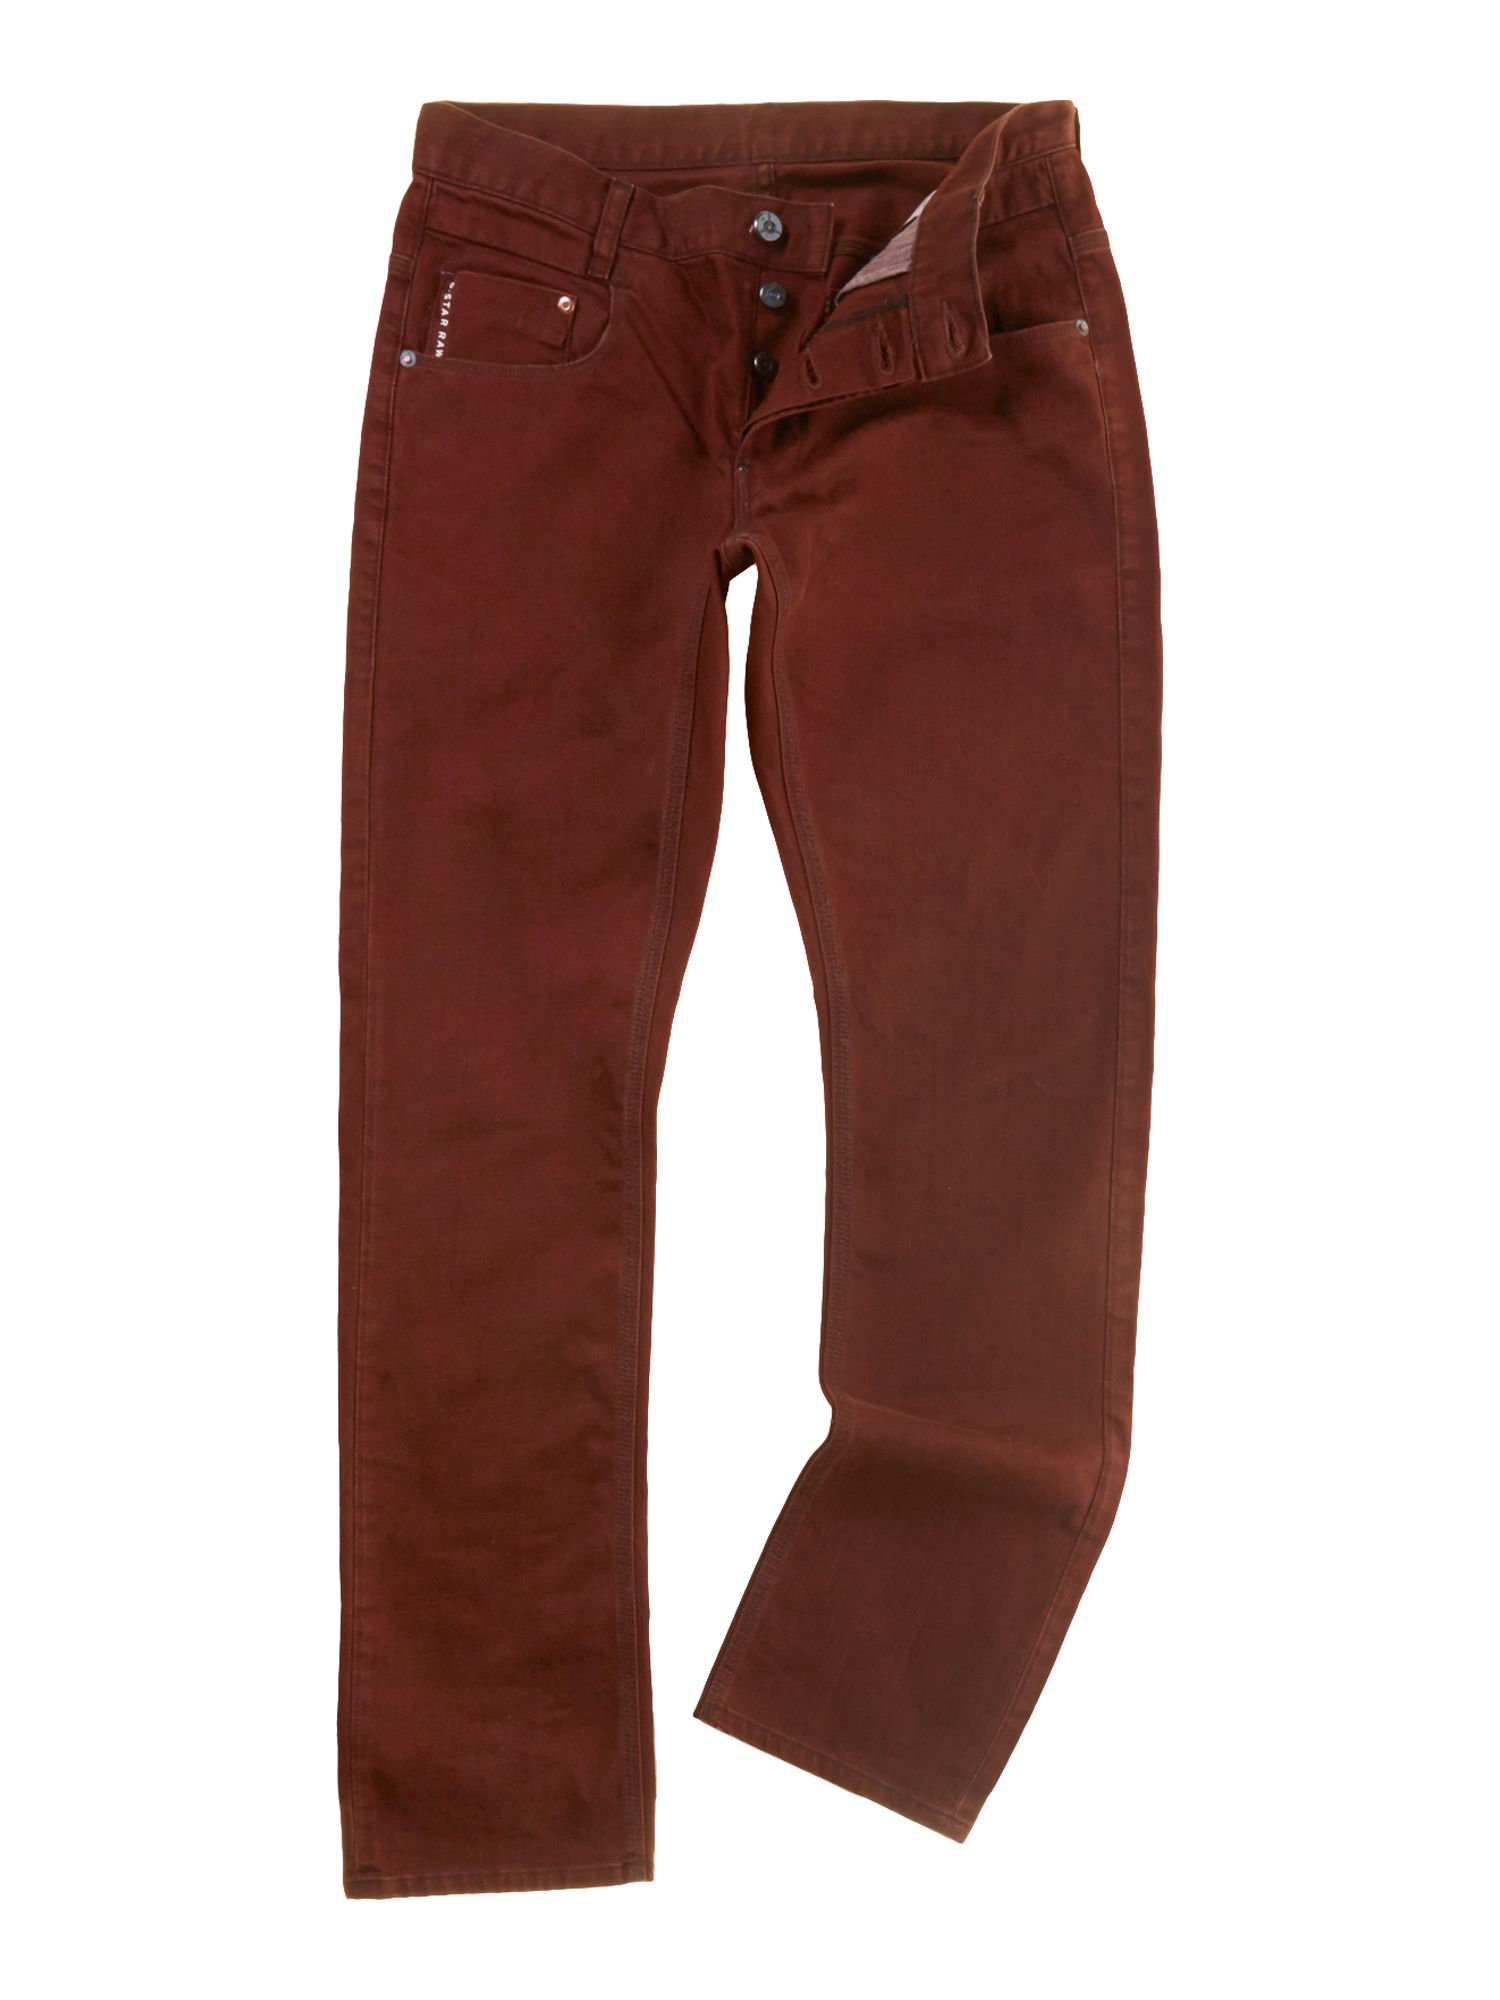 Radar slim fit twill trousers